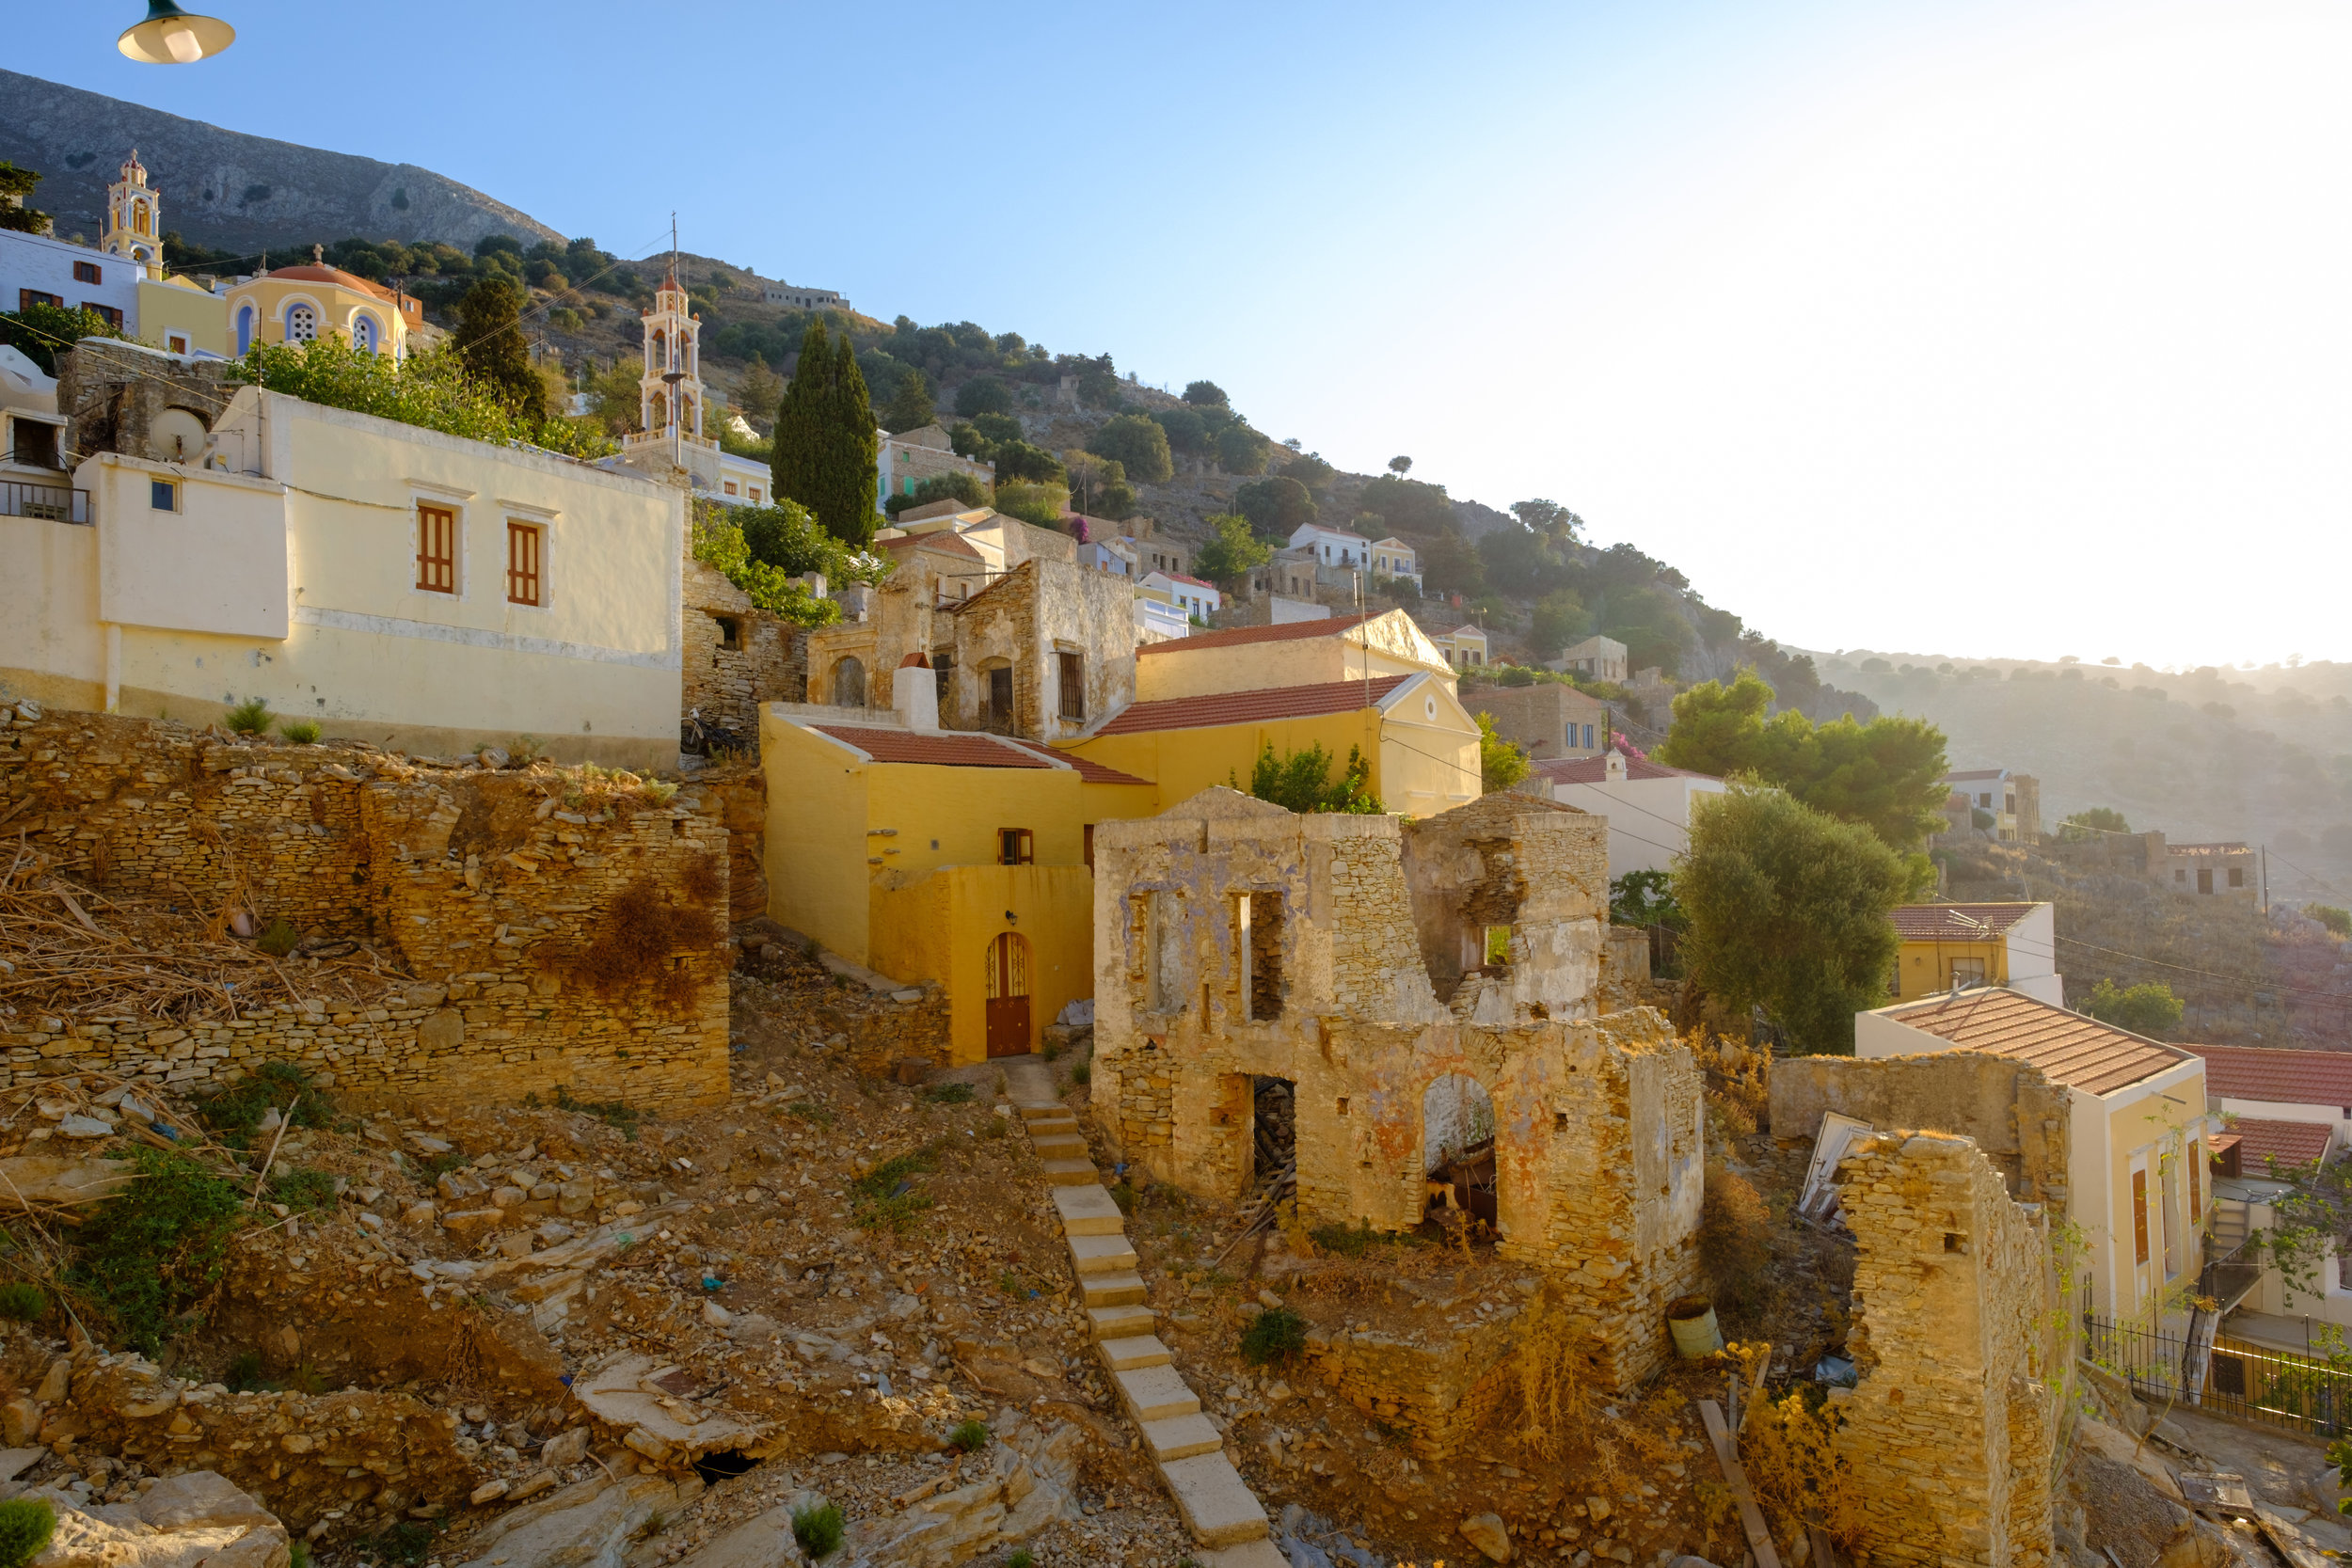 The steep hillside on the island of symi in Greece. Pastel coloured houses